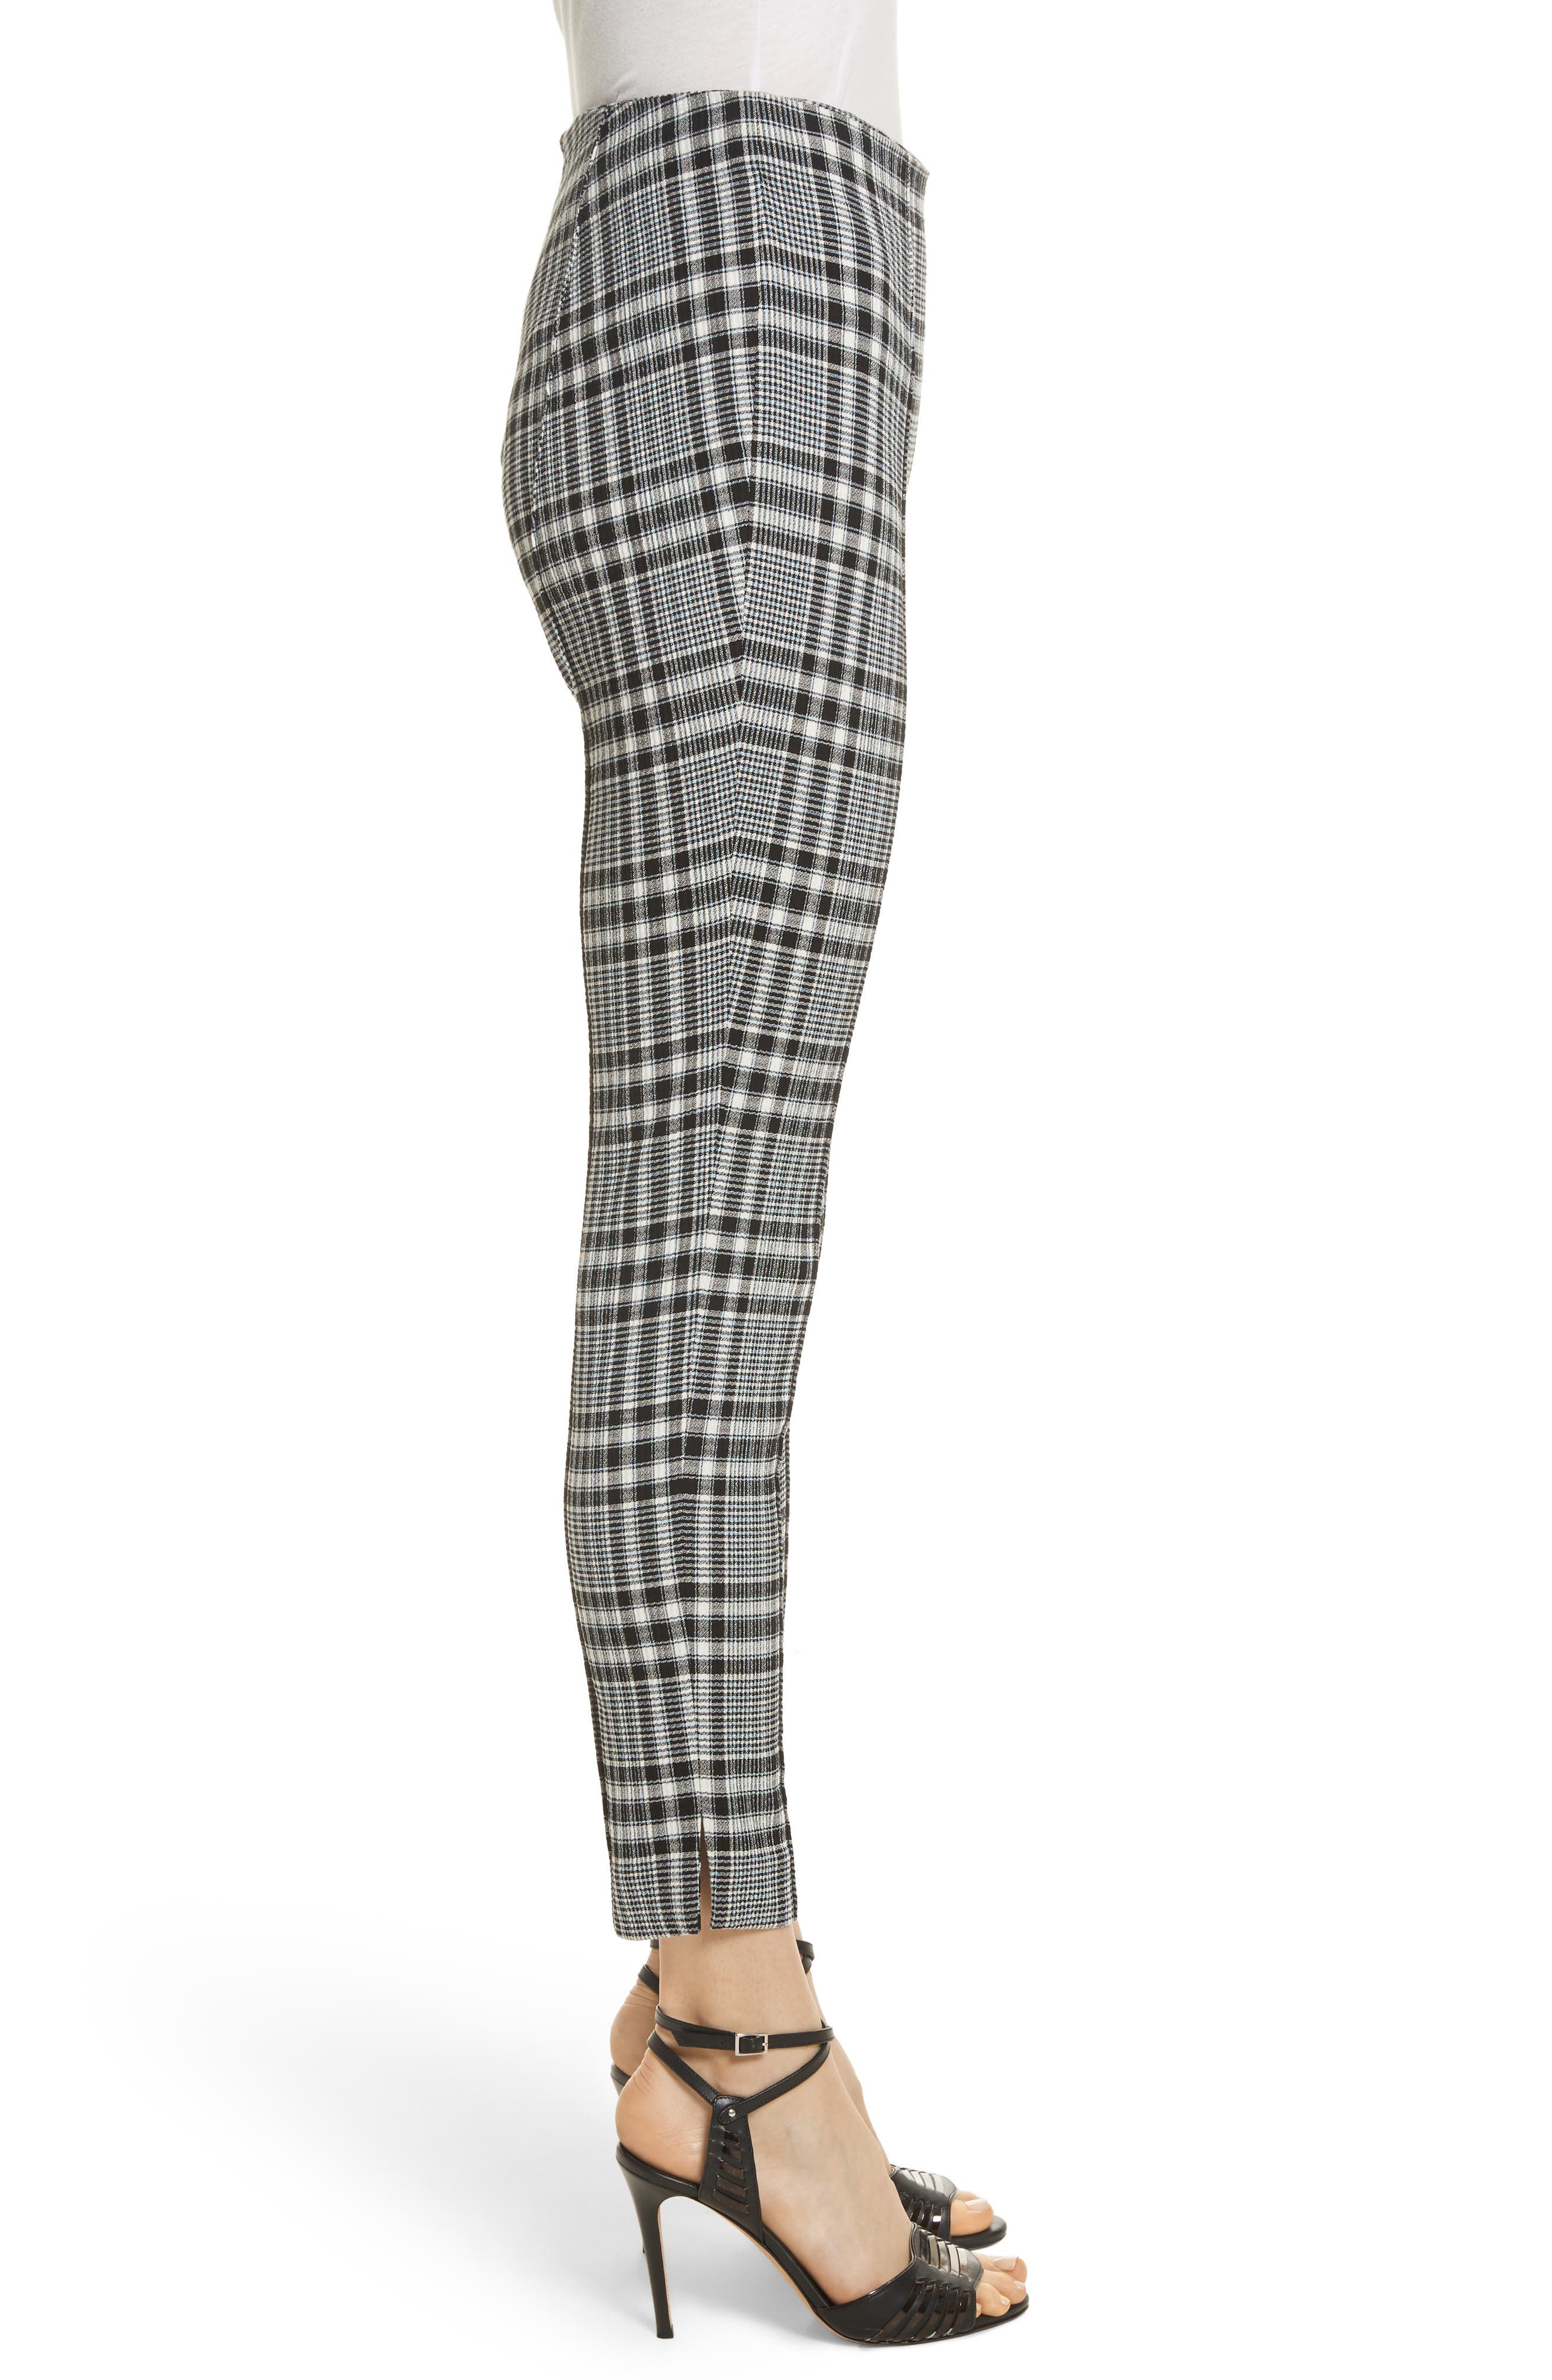 Honolulu Plaid Crop Pants,                             Alternate thumbnail 3, color,                             Black/ Blue